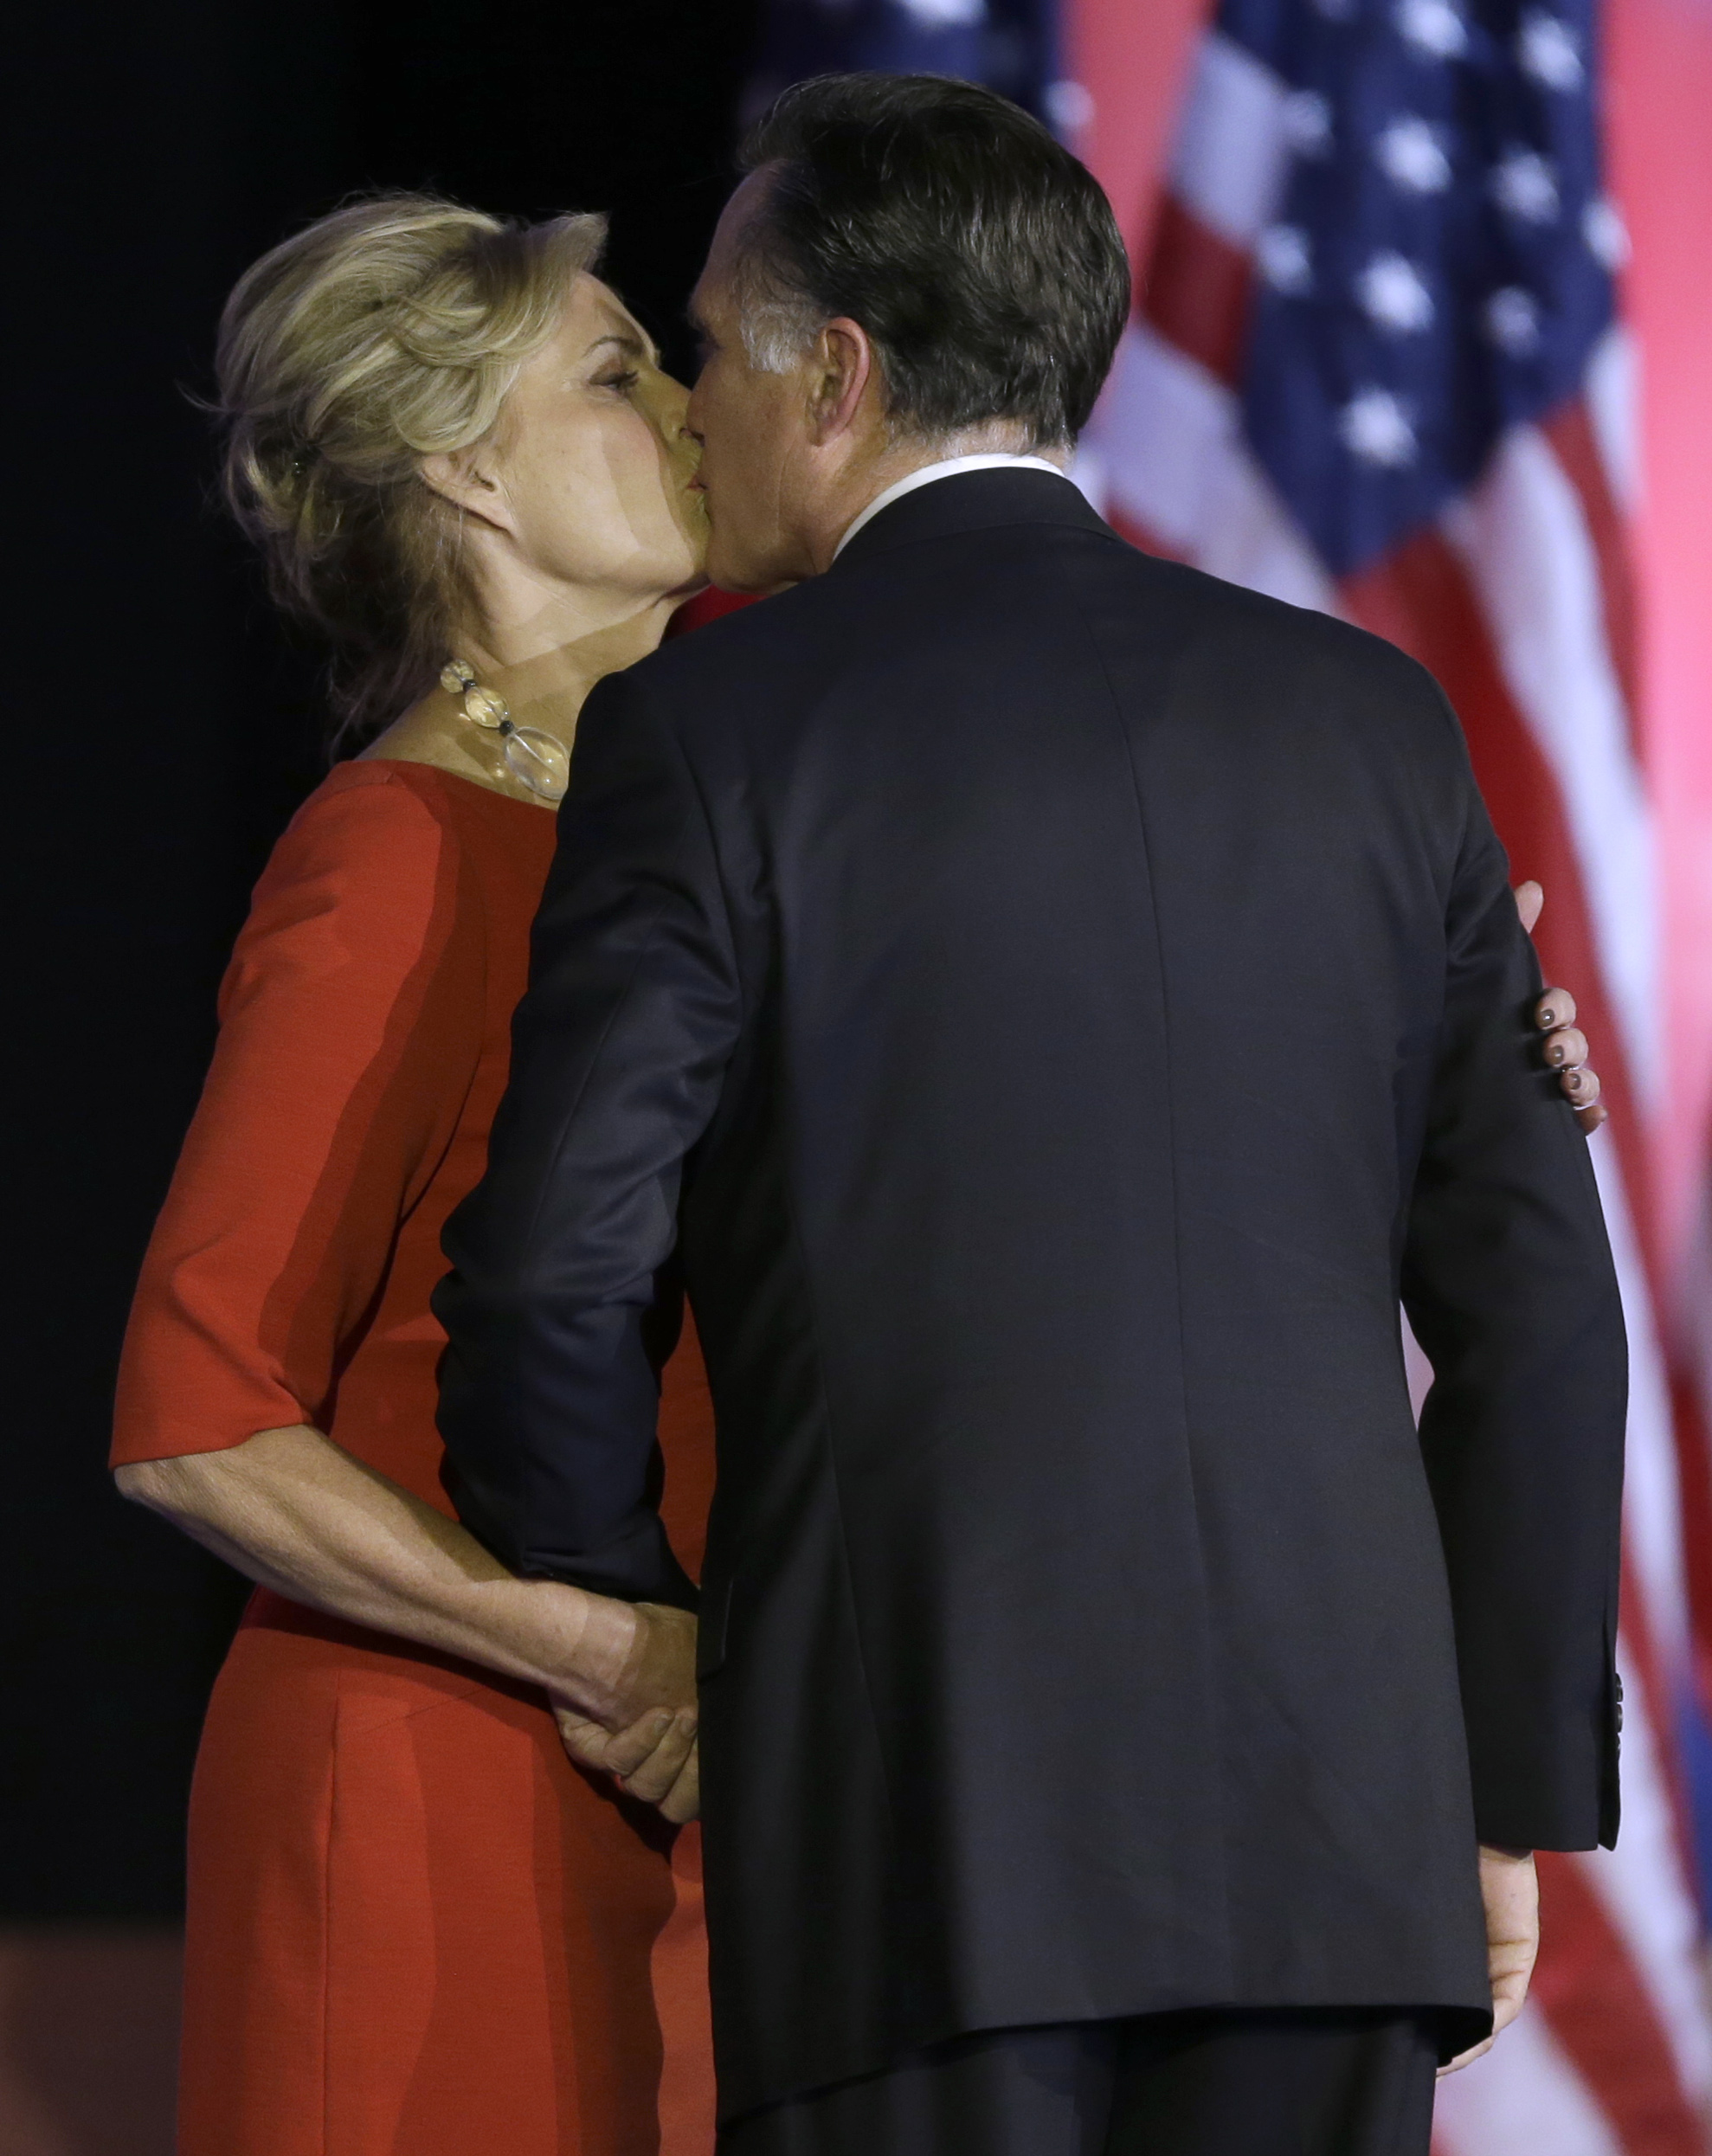 Republican presidential candidate and former Massachusetts Gov. Mitt Romney gets a kiss from his wife Ann during his election night rally on Nov. 7, 2012, in Boston.